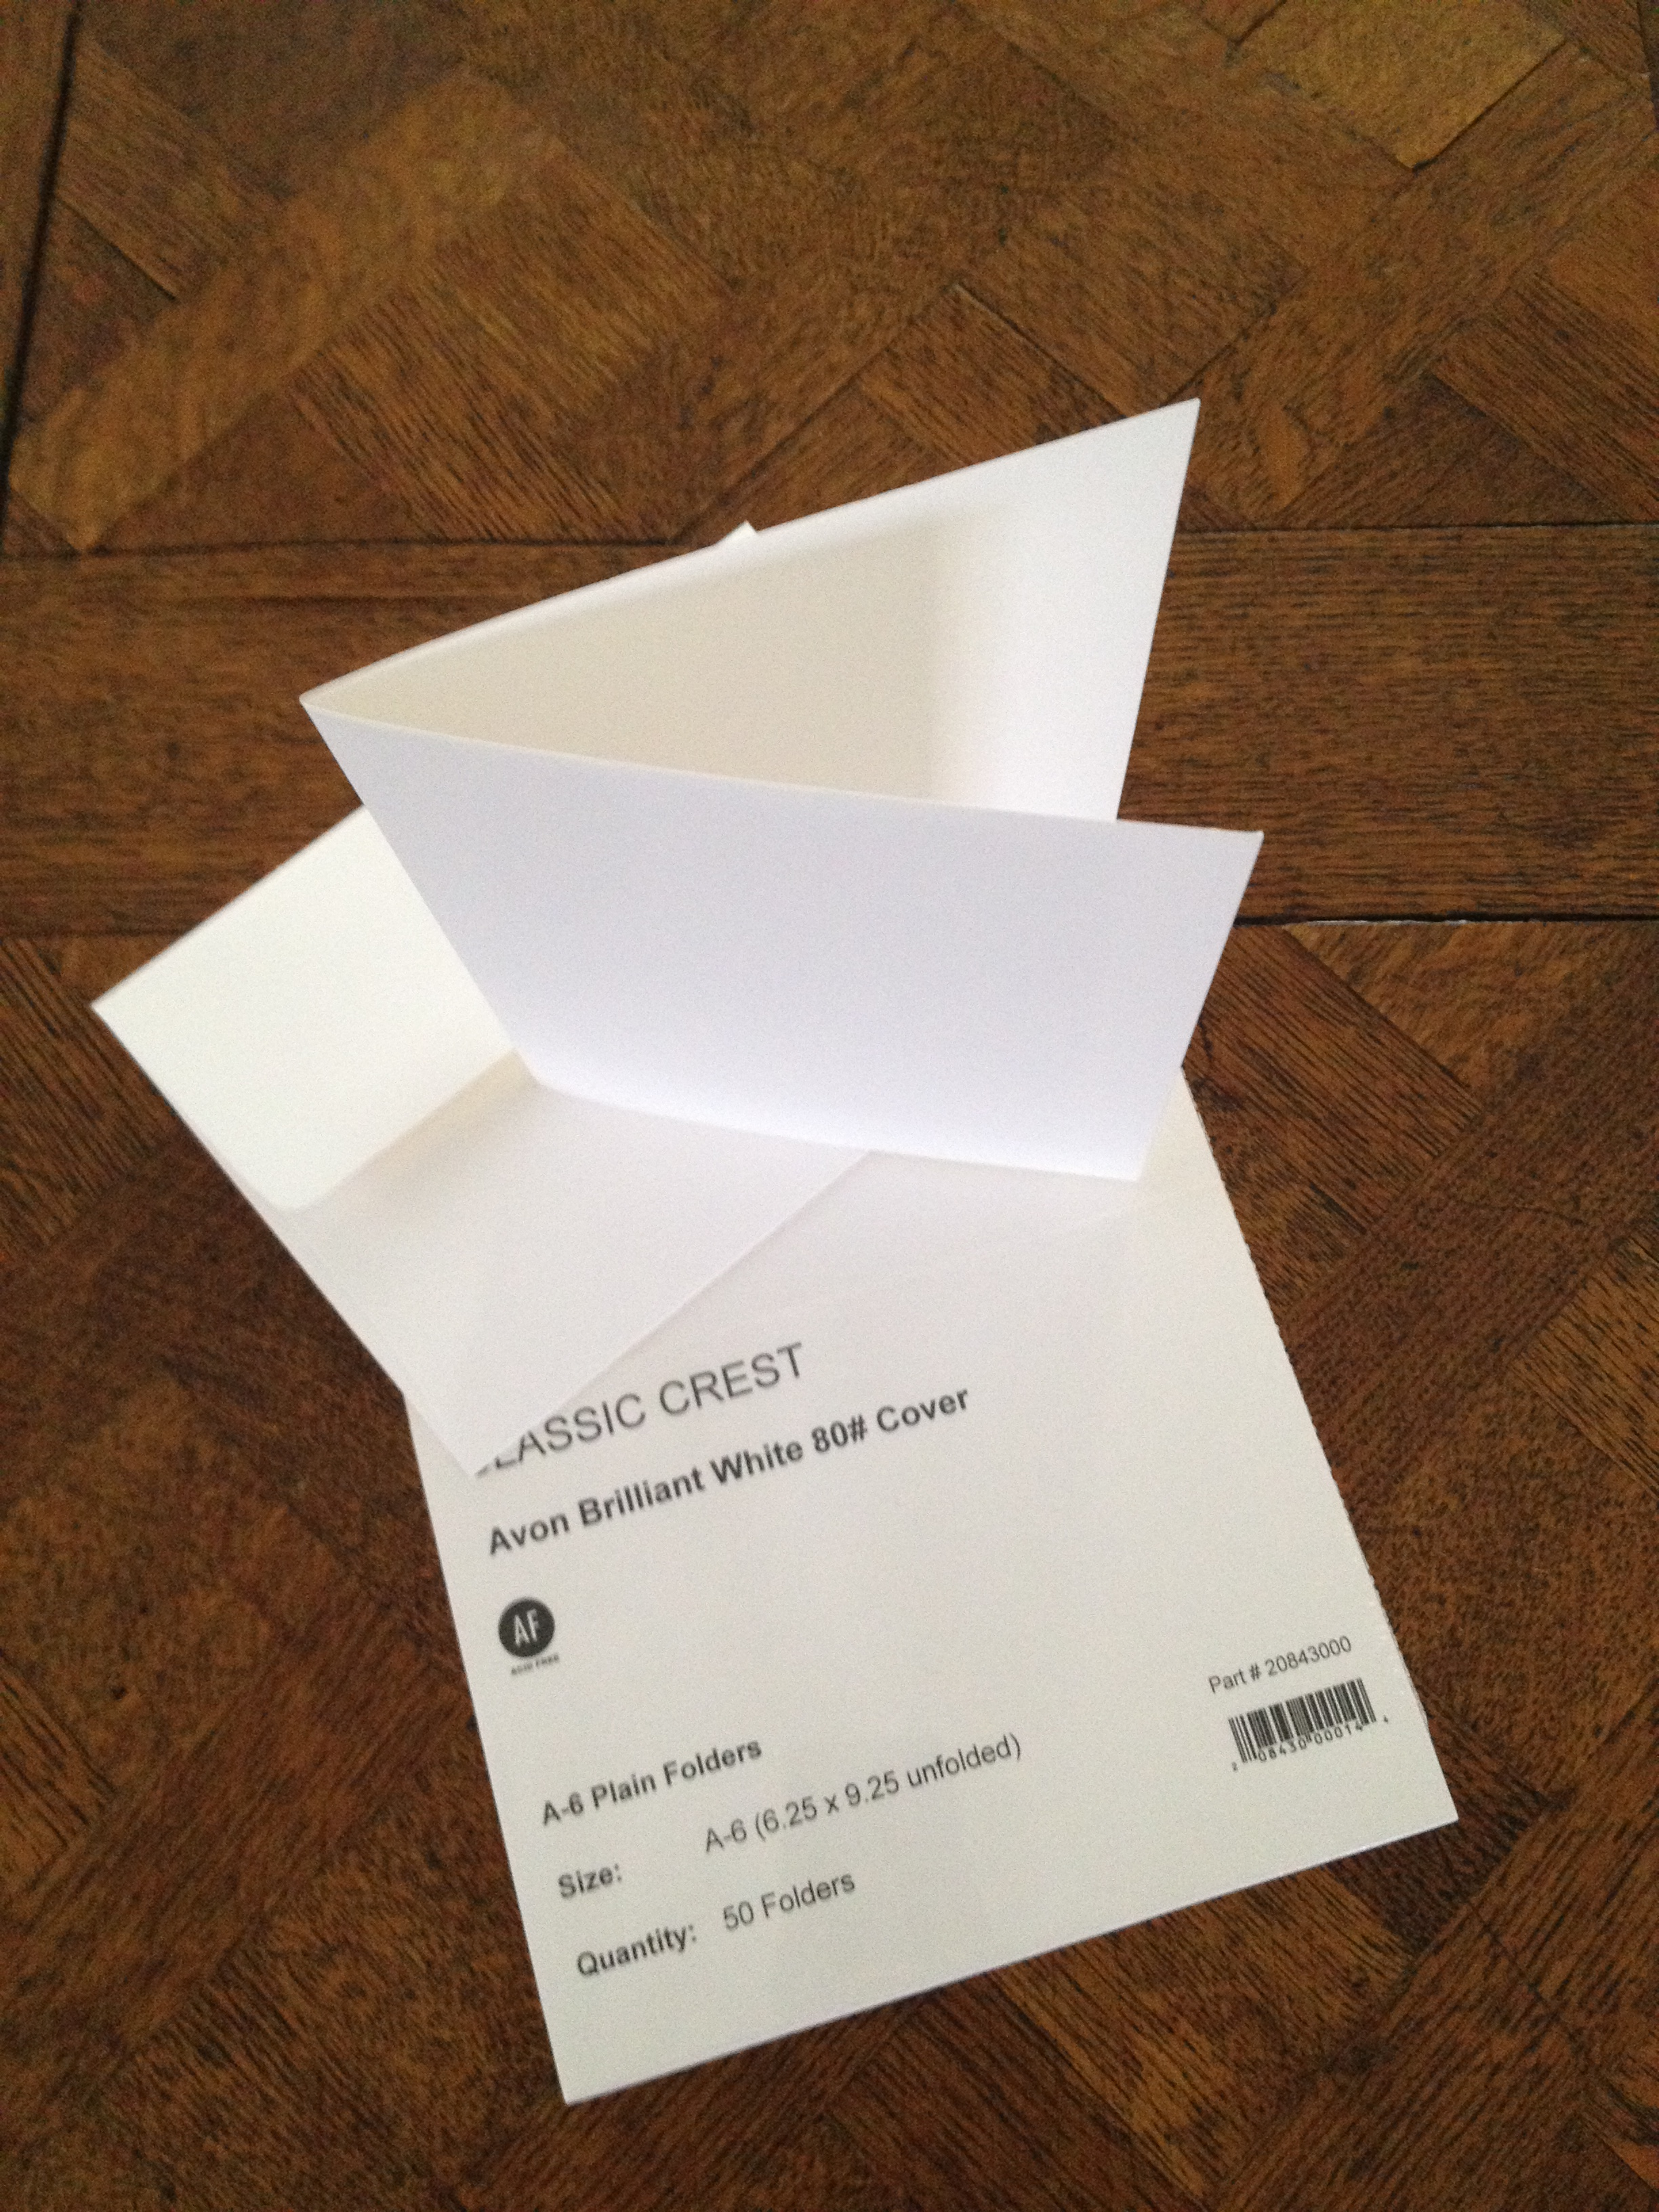 Picture of Card Stock and Envelopes